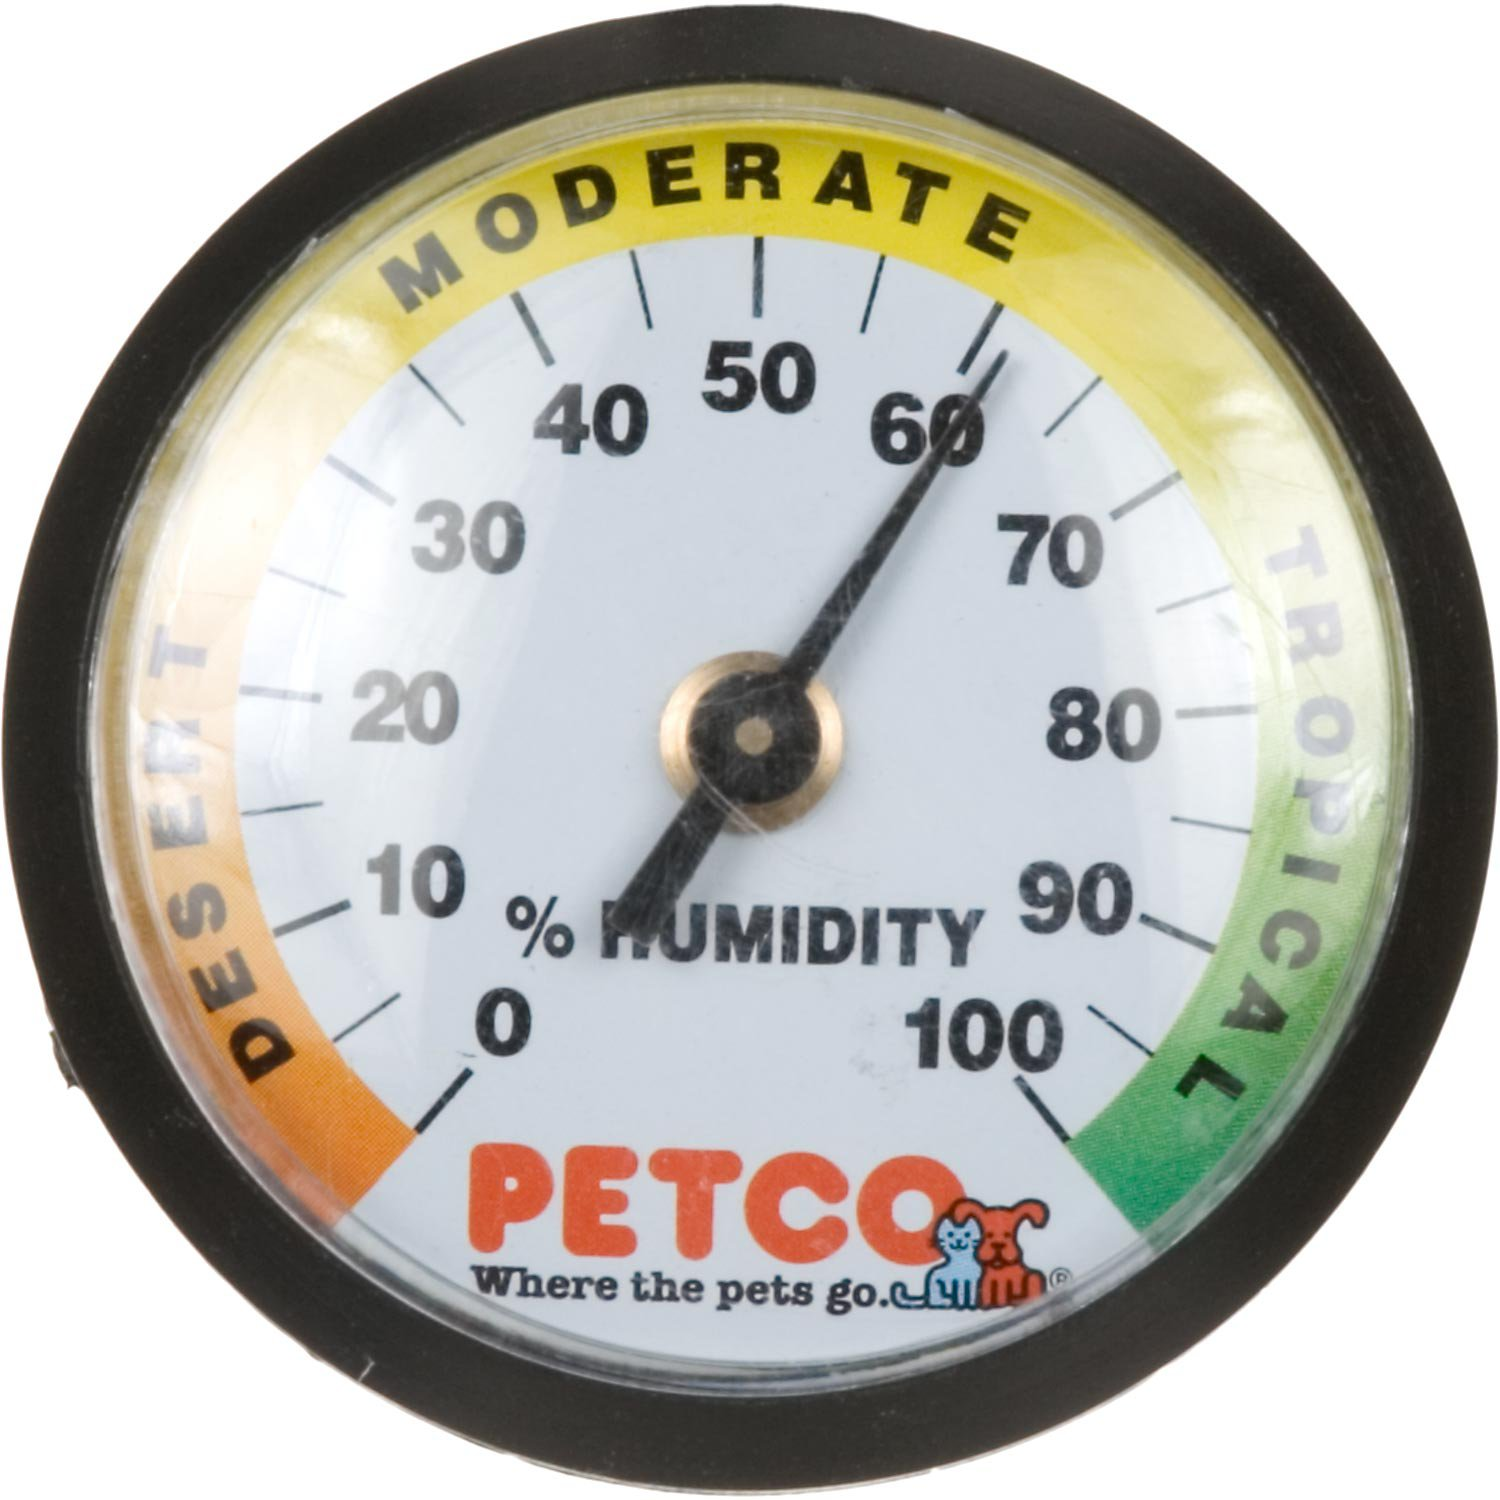 Petco Reptile Habitat Humidity Gauge